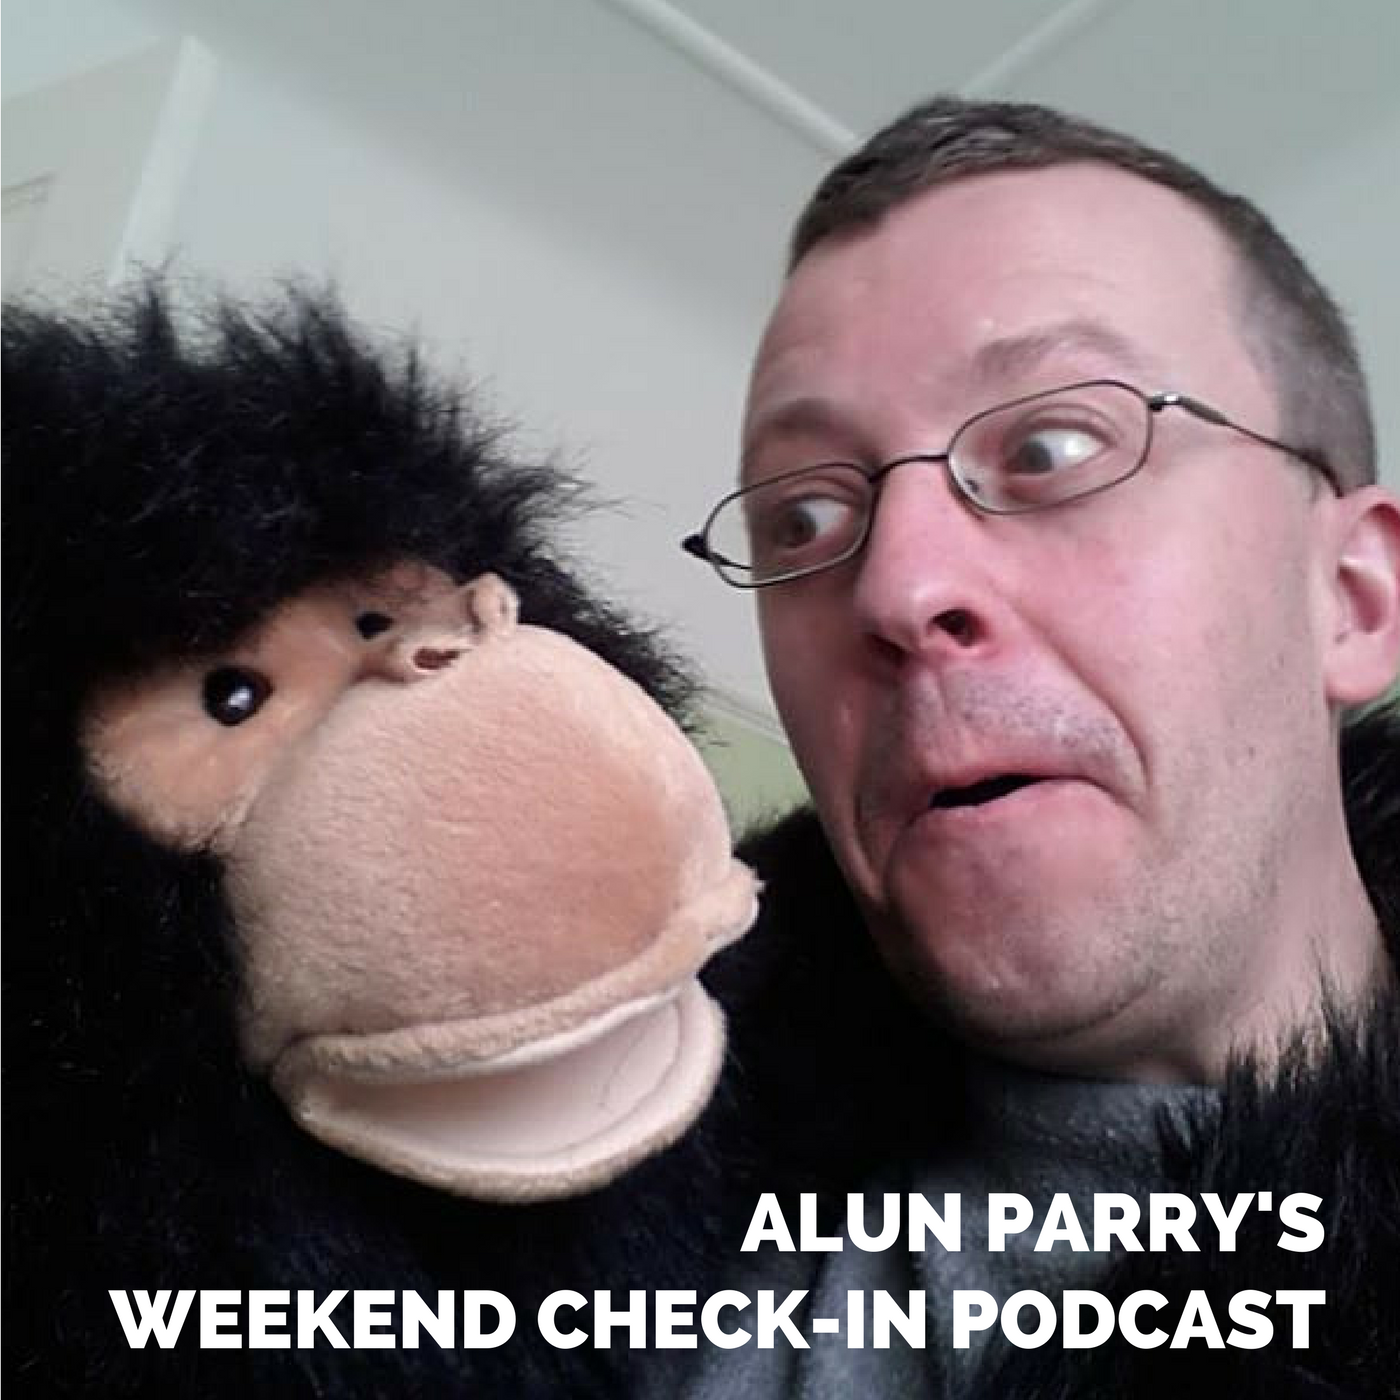 Alun Parry's Weekend Check In Podcast